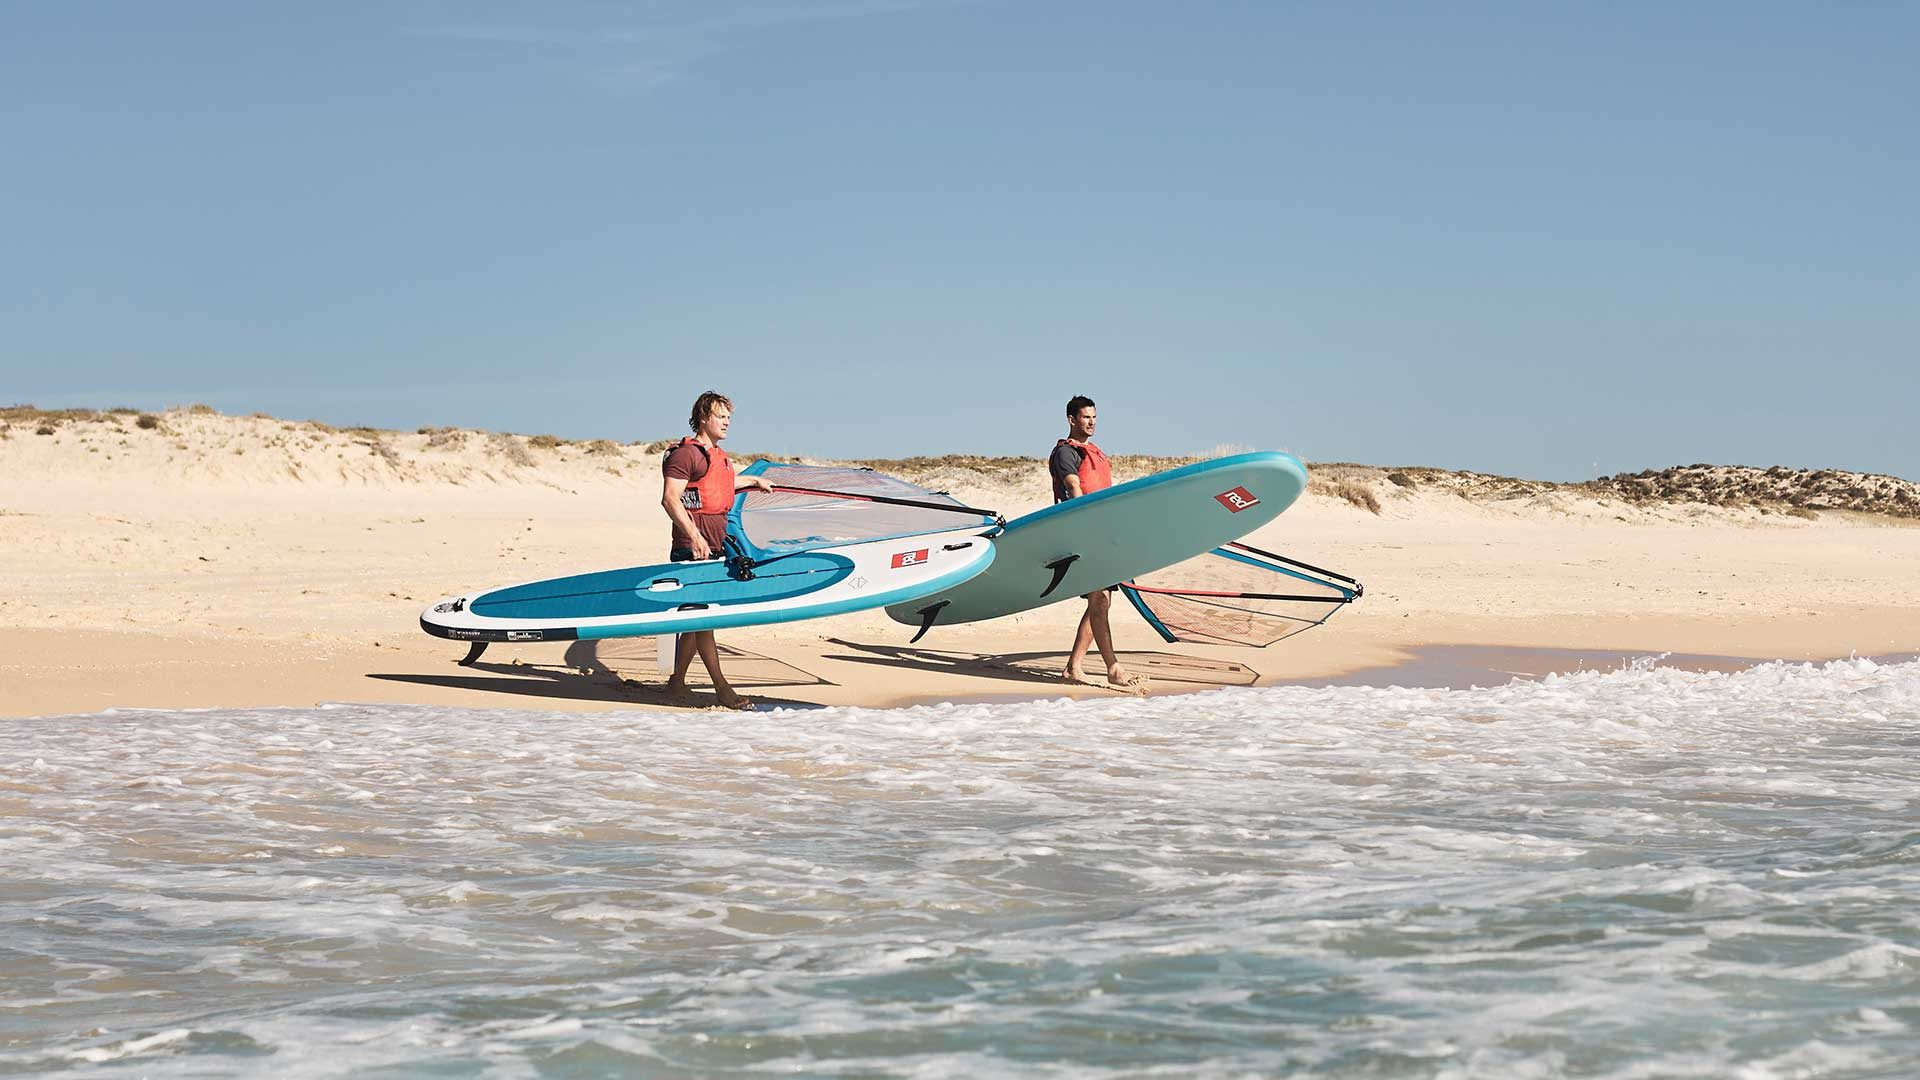 redpaddleco-107-wind-inflatable-paddle-board-desktop-gallery-fins